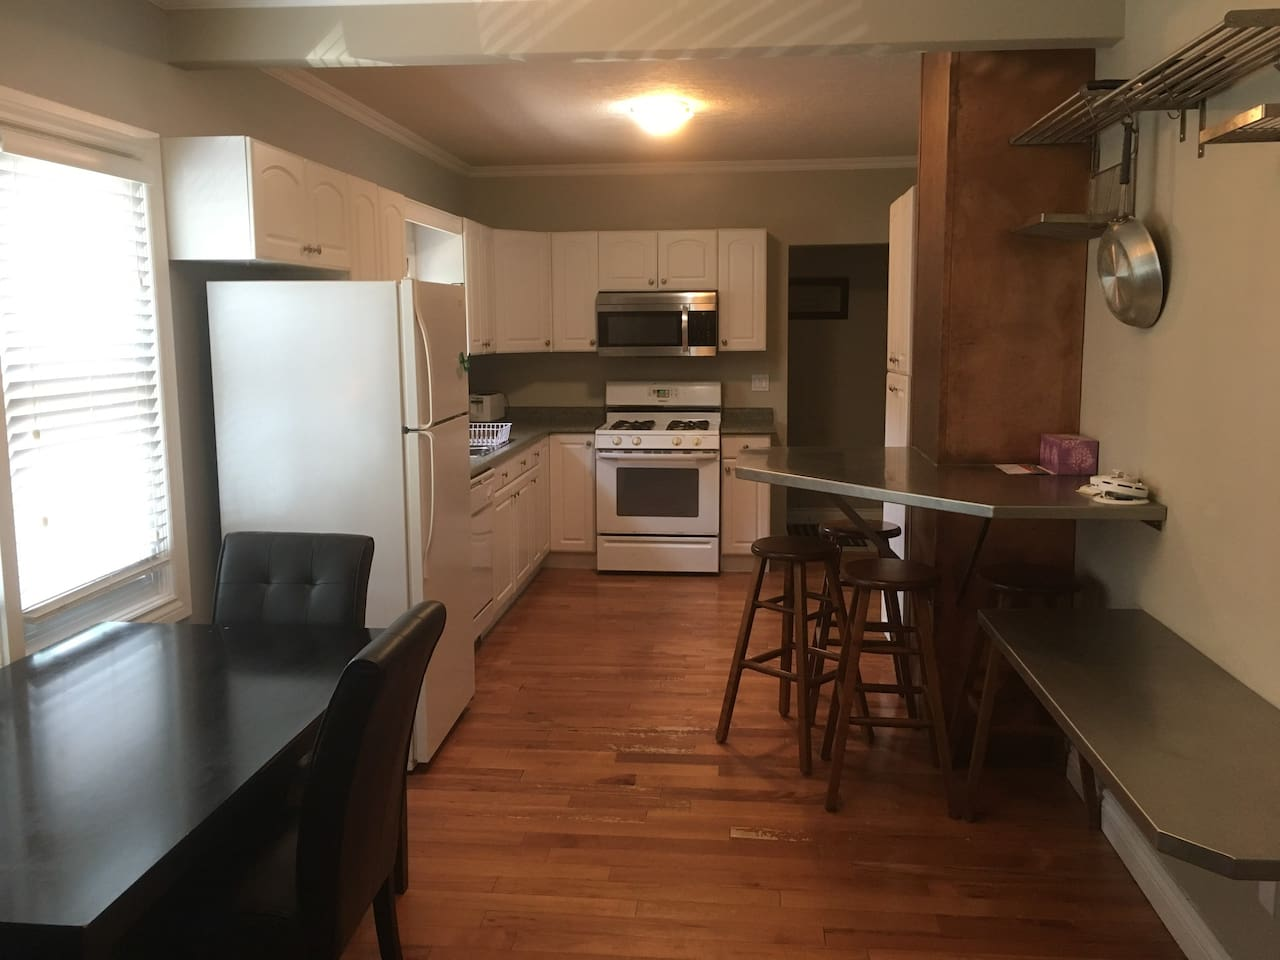 Open kitchen and eating area with table and raised bar